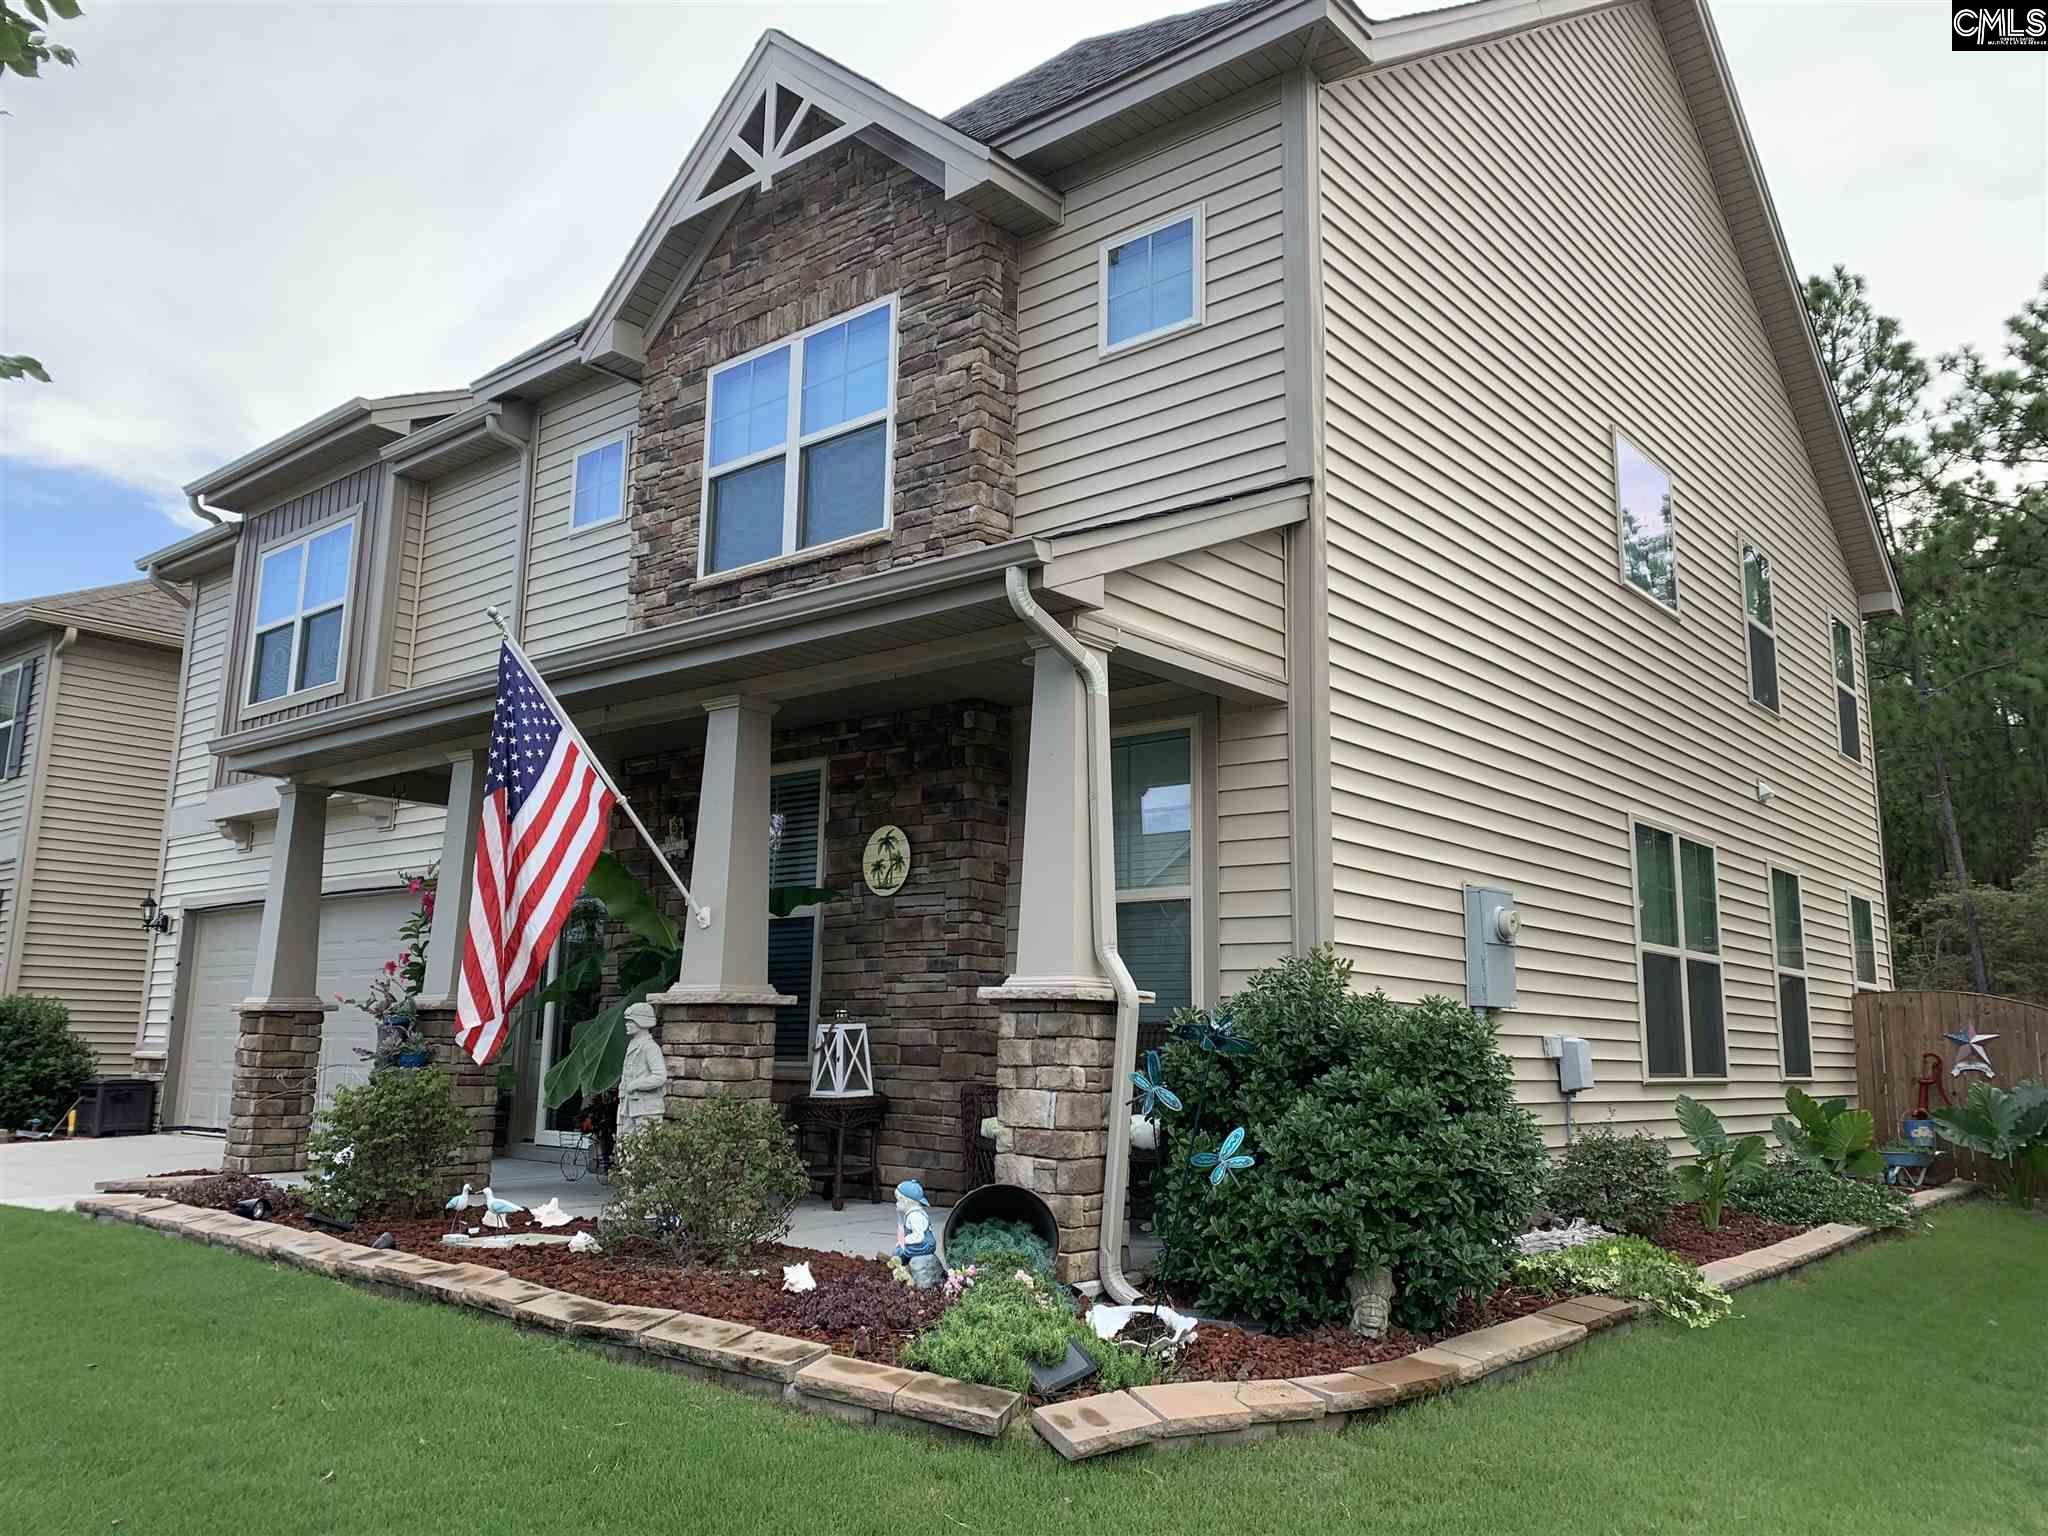 584 Blue Ledge Lexington, SC 29072